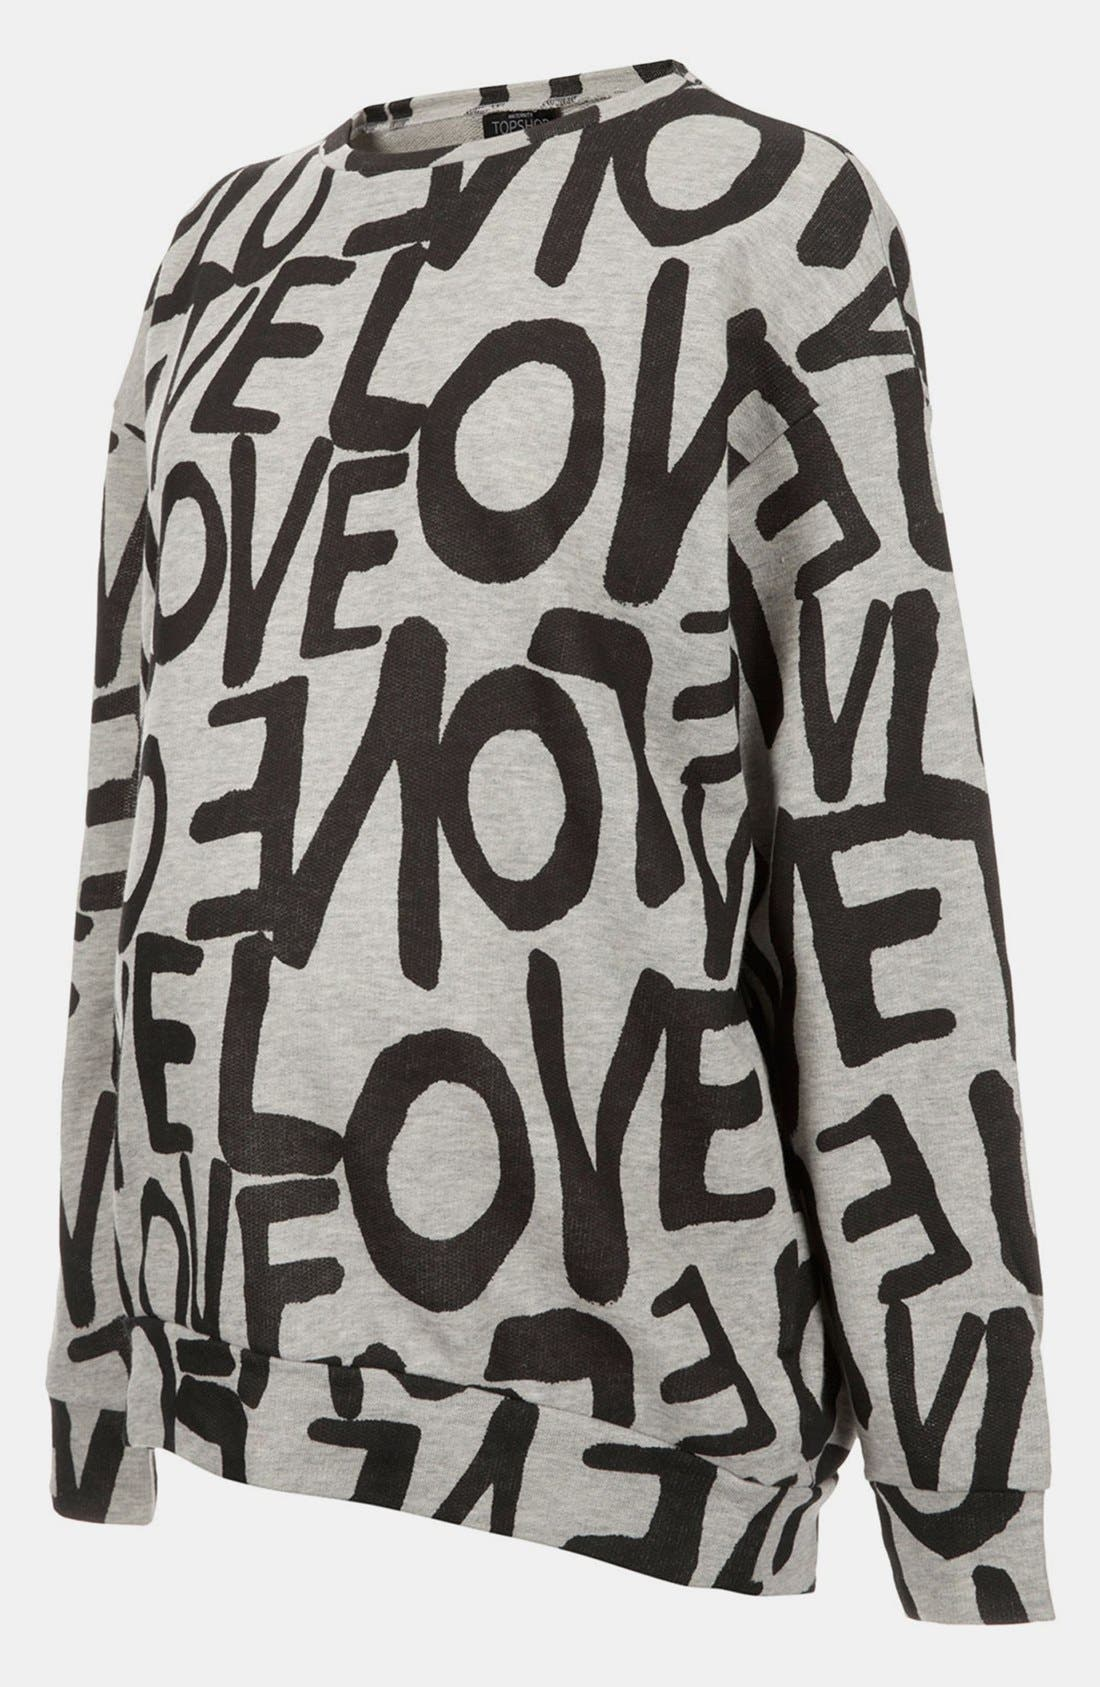 Main Image - Topshop 'Love' Maternity Sweatshirt